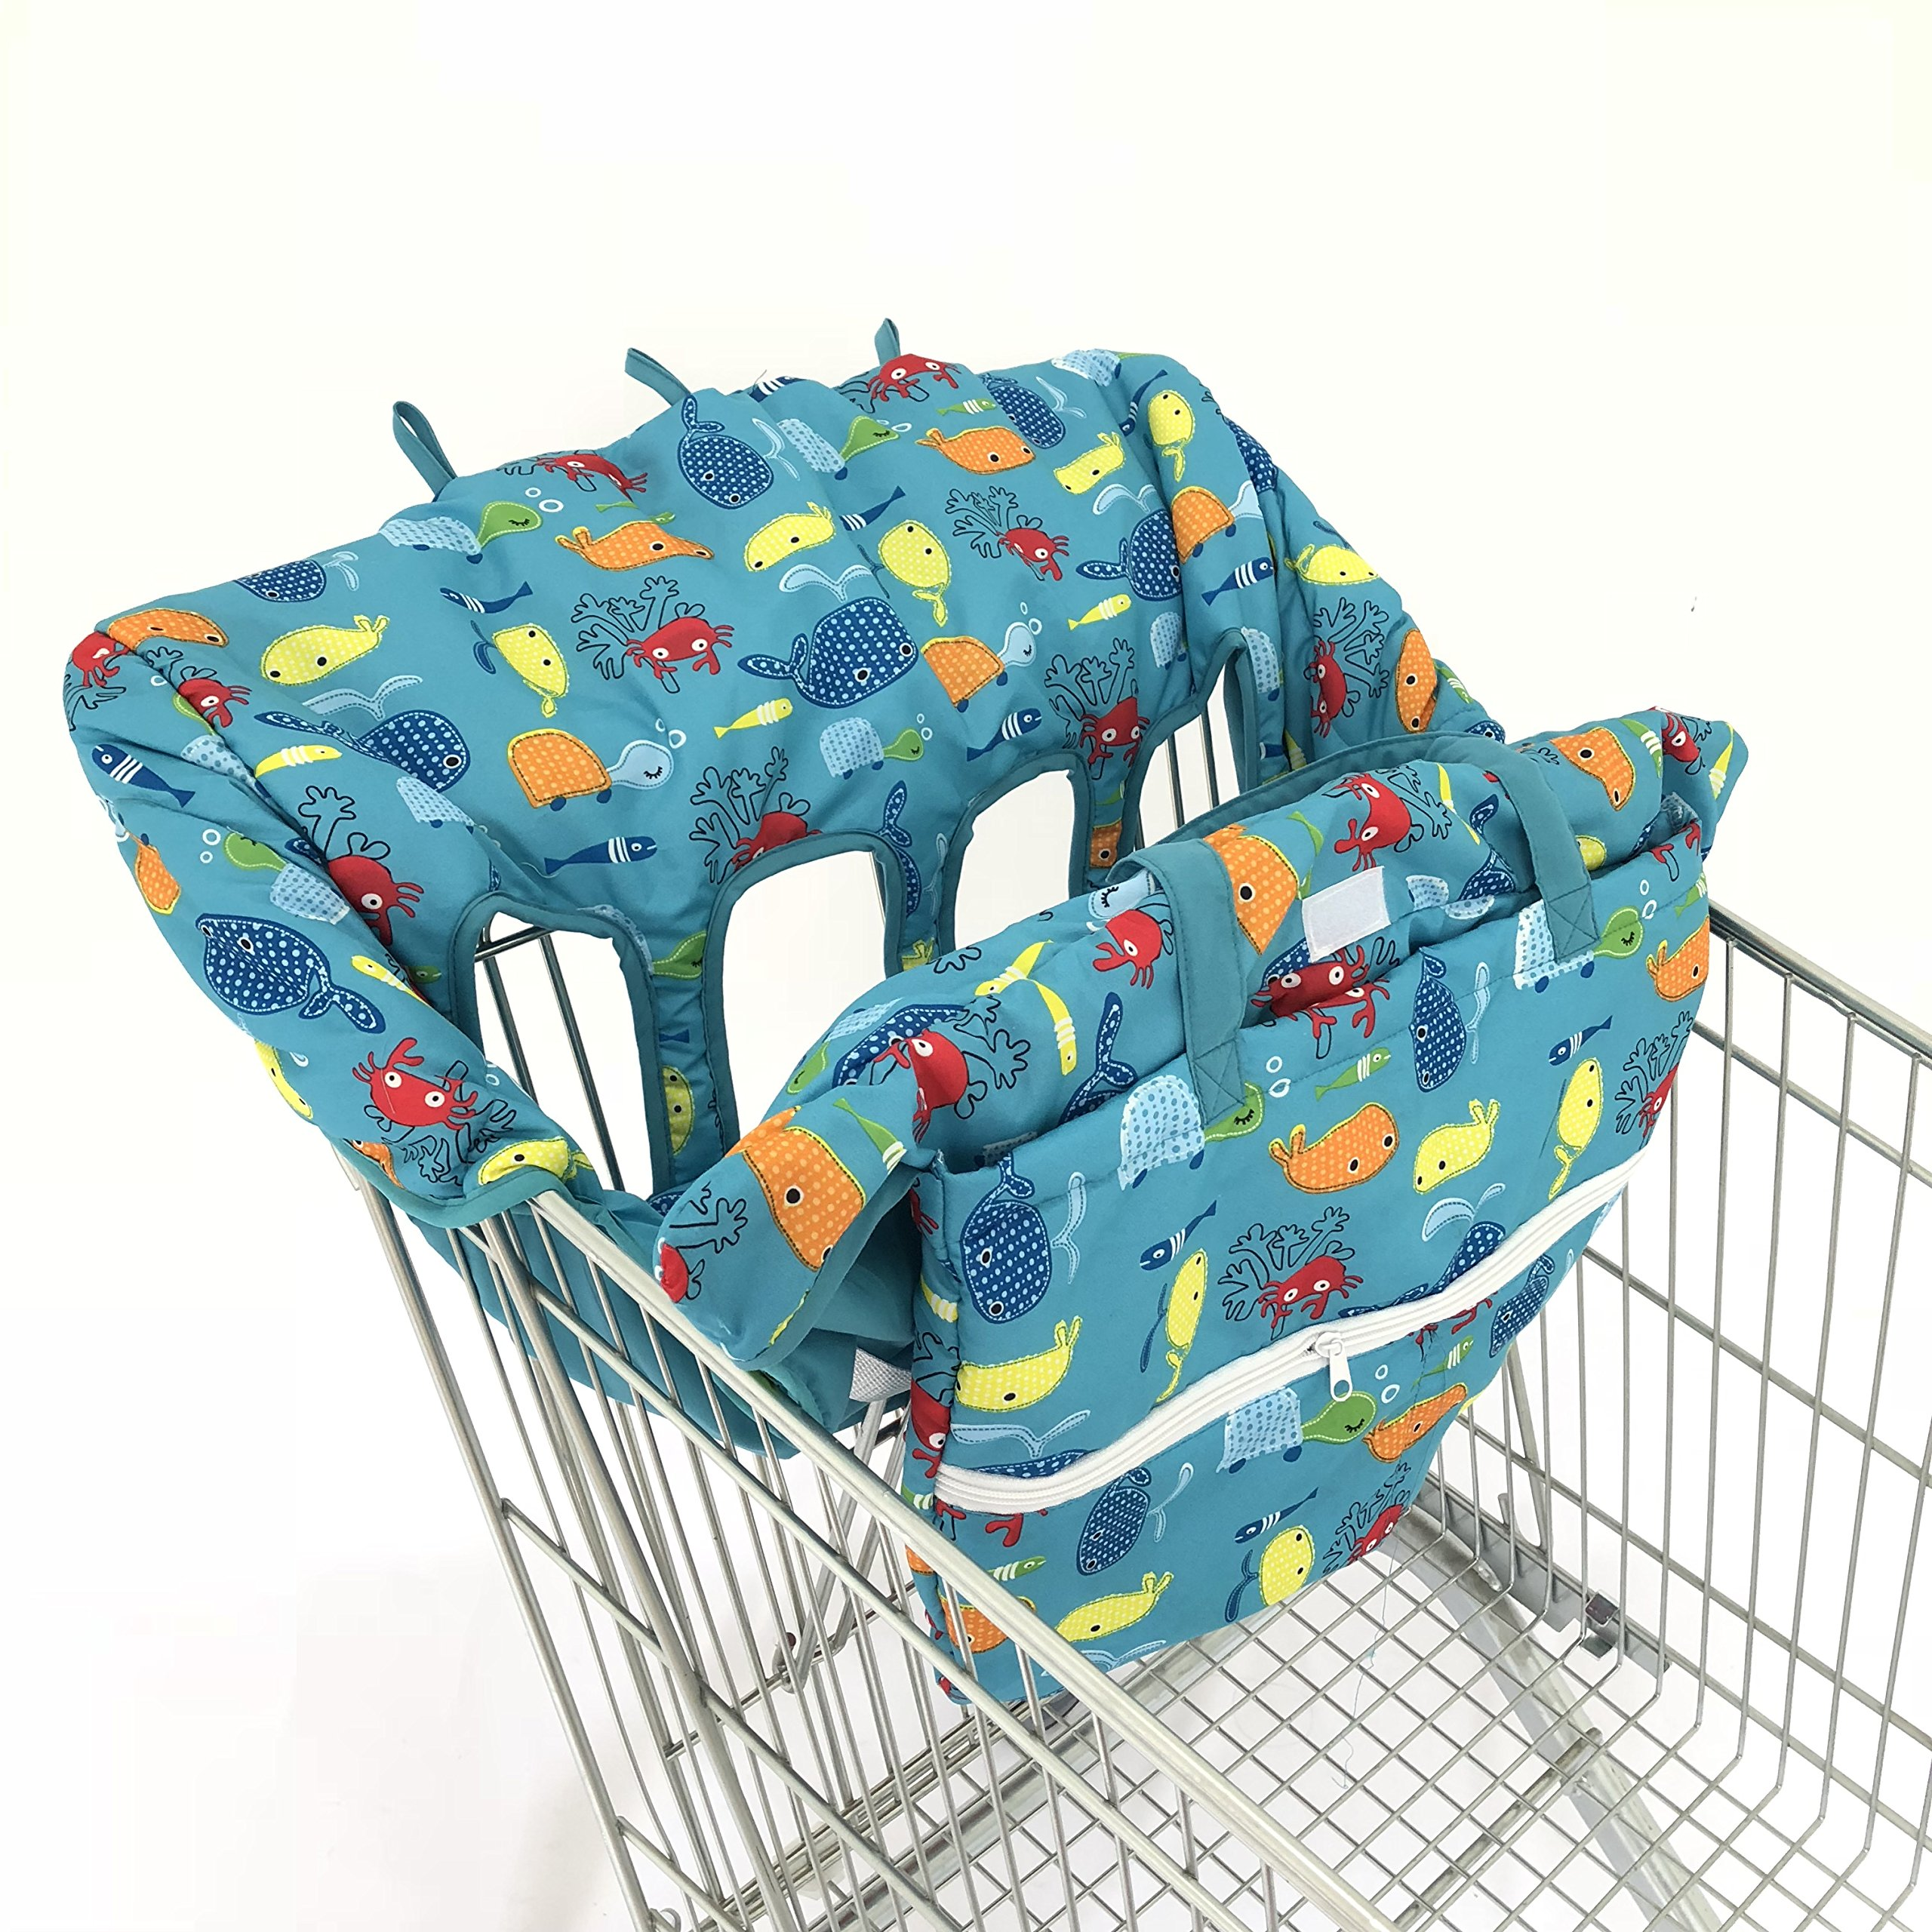 4 Legs Holes Double Babies Shopping Cart Cover for Twin or Baby Siblings. X-Large Size That was Guaranteed to Fit Wholesale Warehouse Grocery Stores (Submarine World)